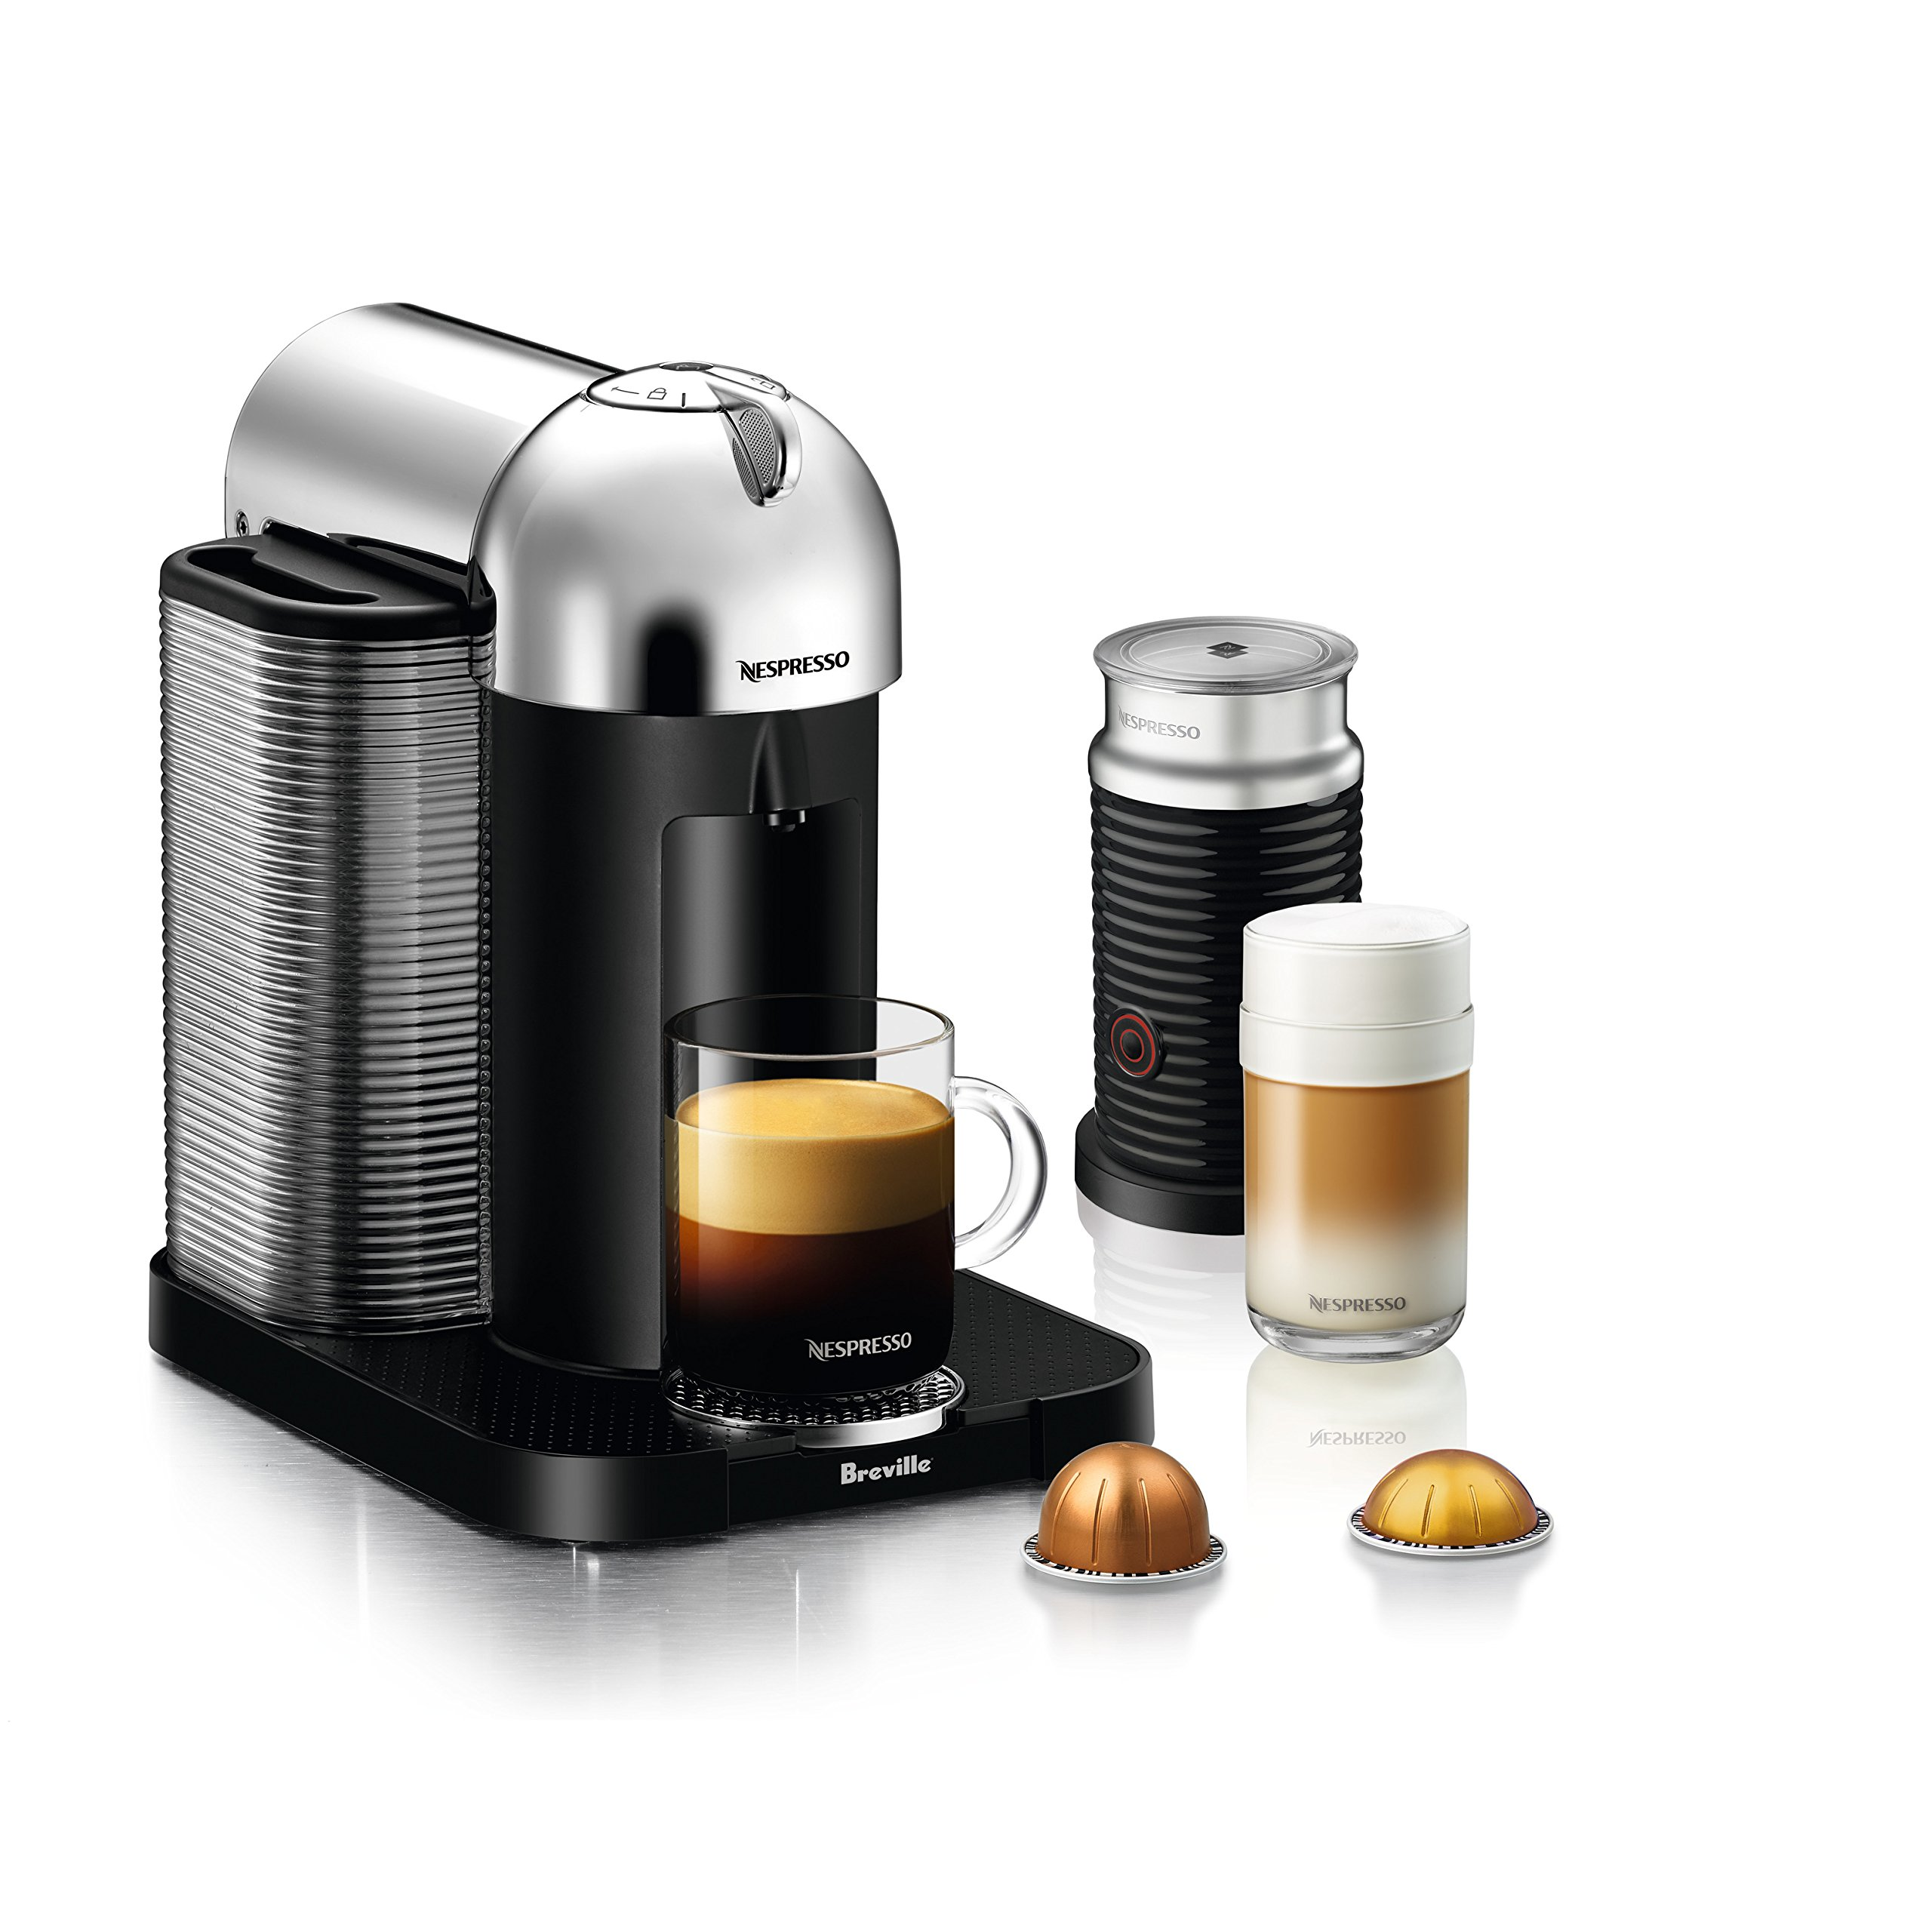 Nespresso Vertuo Coffee and Espresso Machine by Breville with Aeroccino, Chrome by Breville